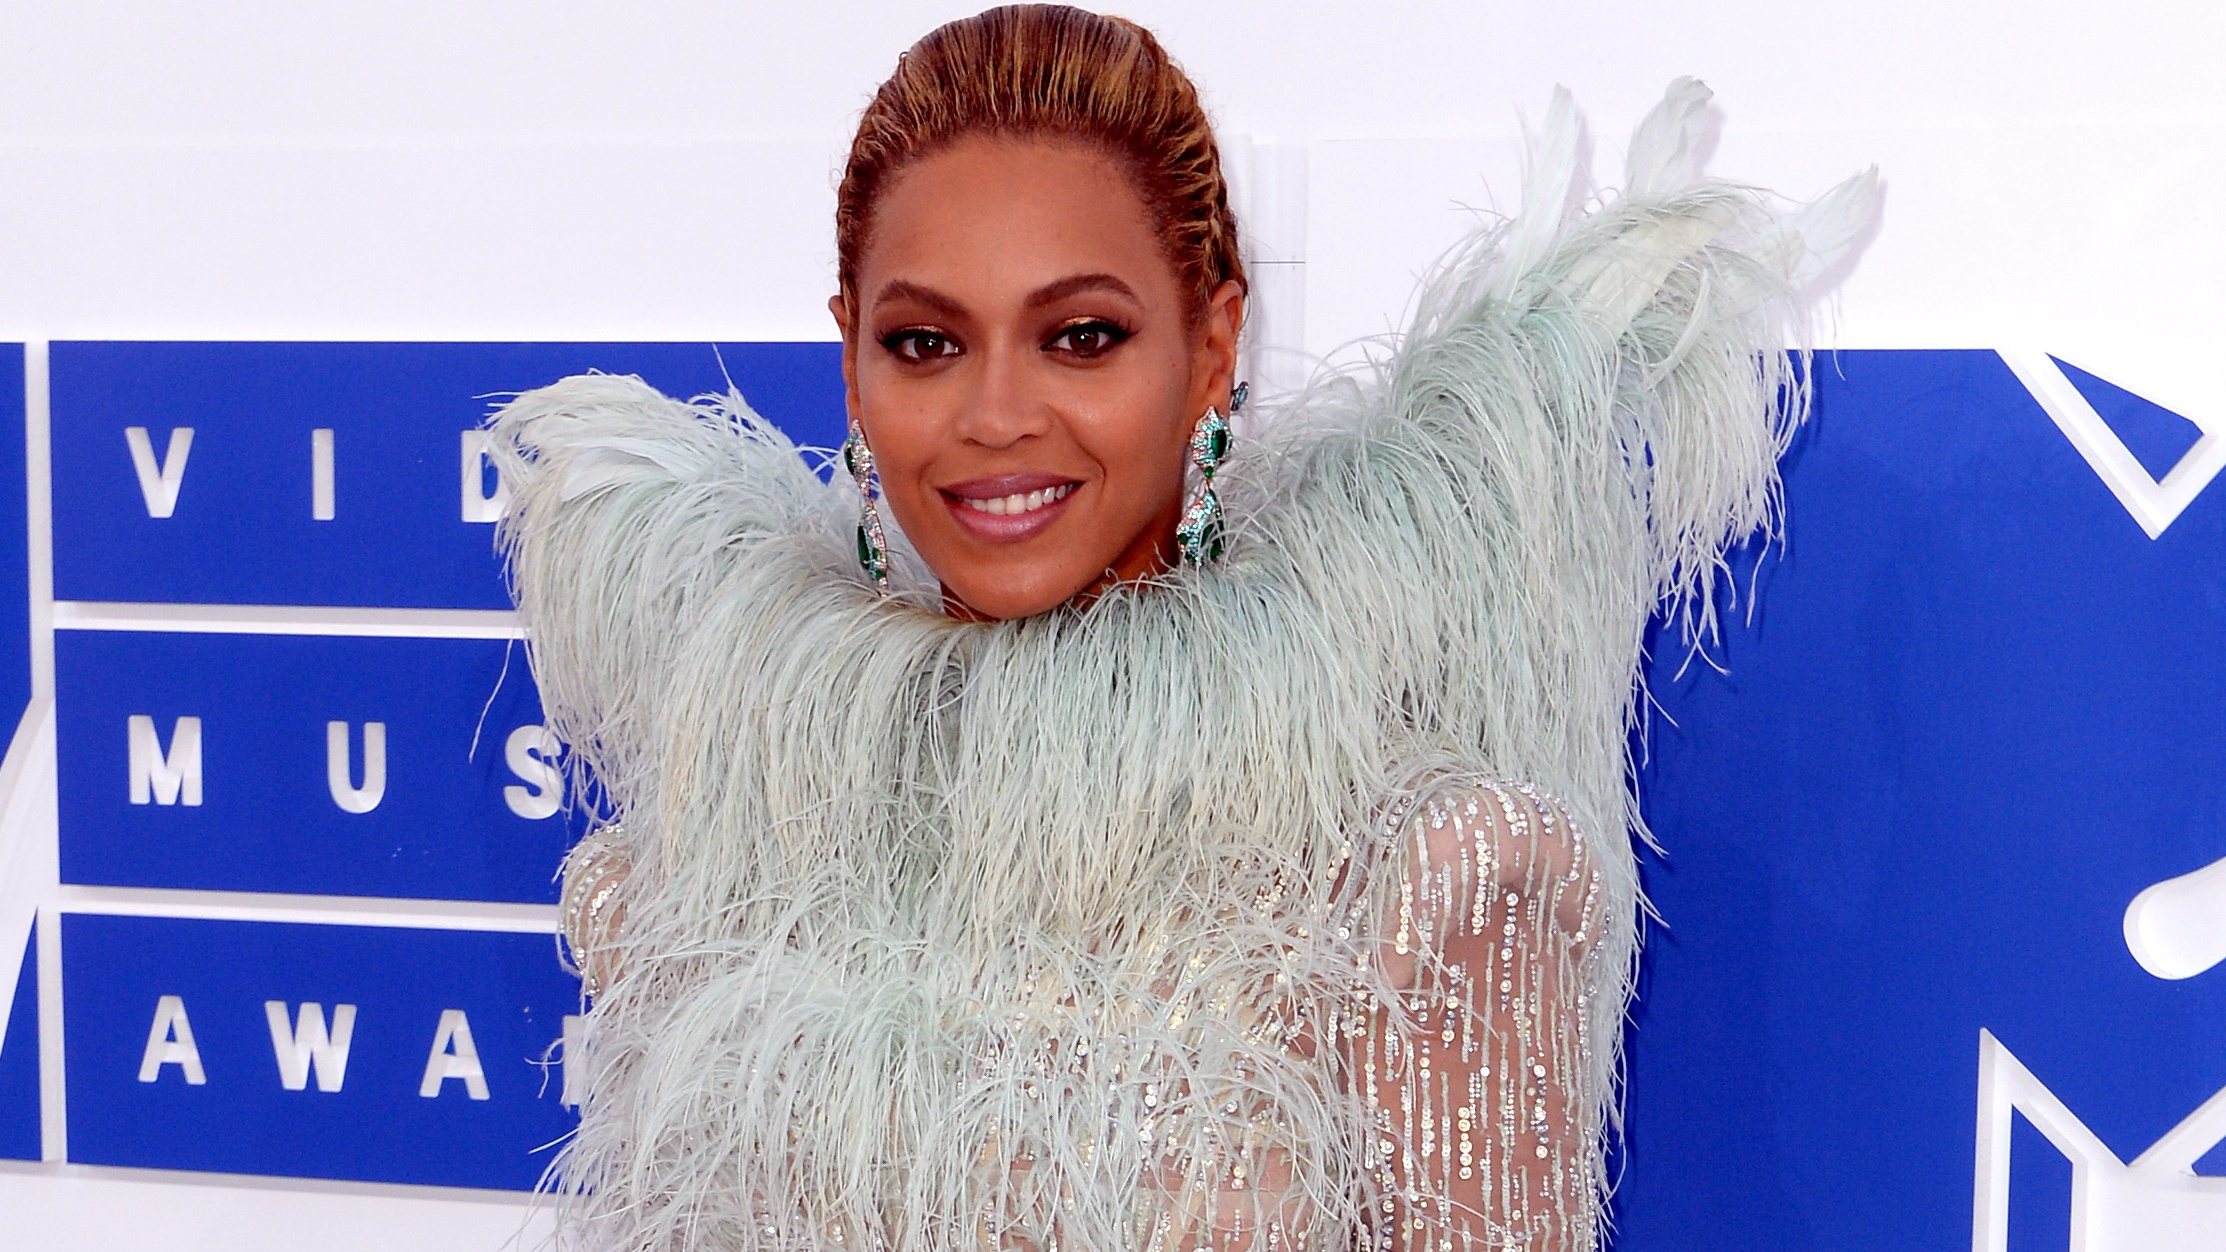 Pop star Beyonce has twins, hints her dad